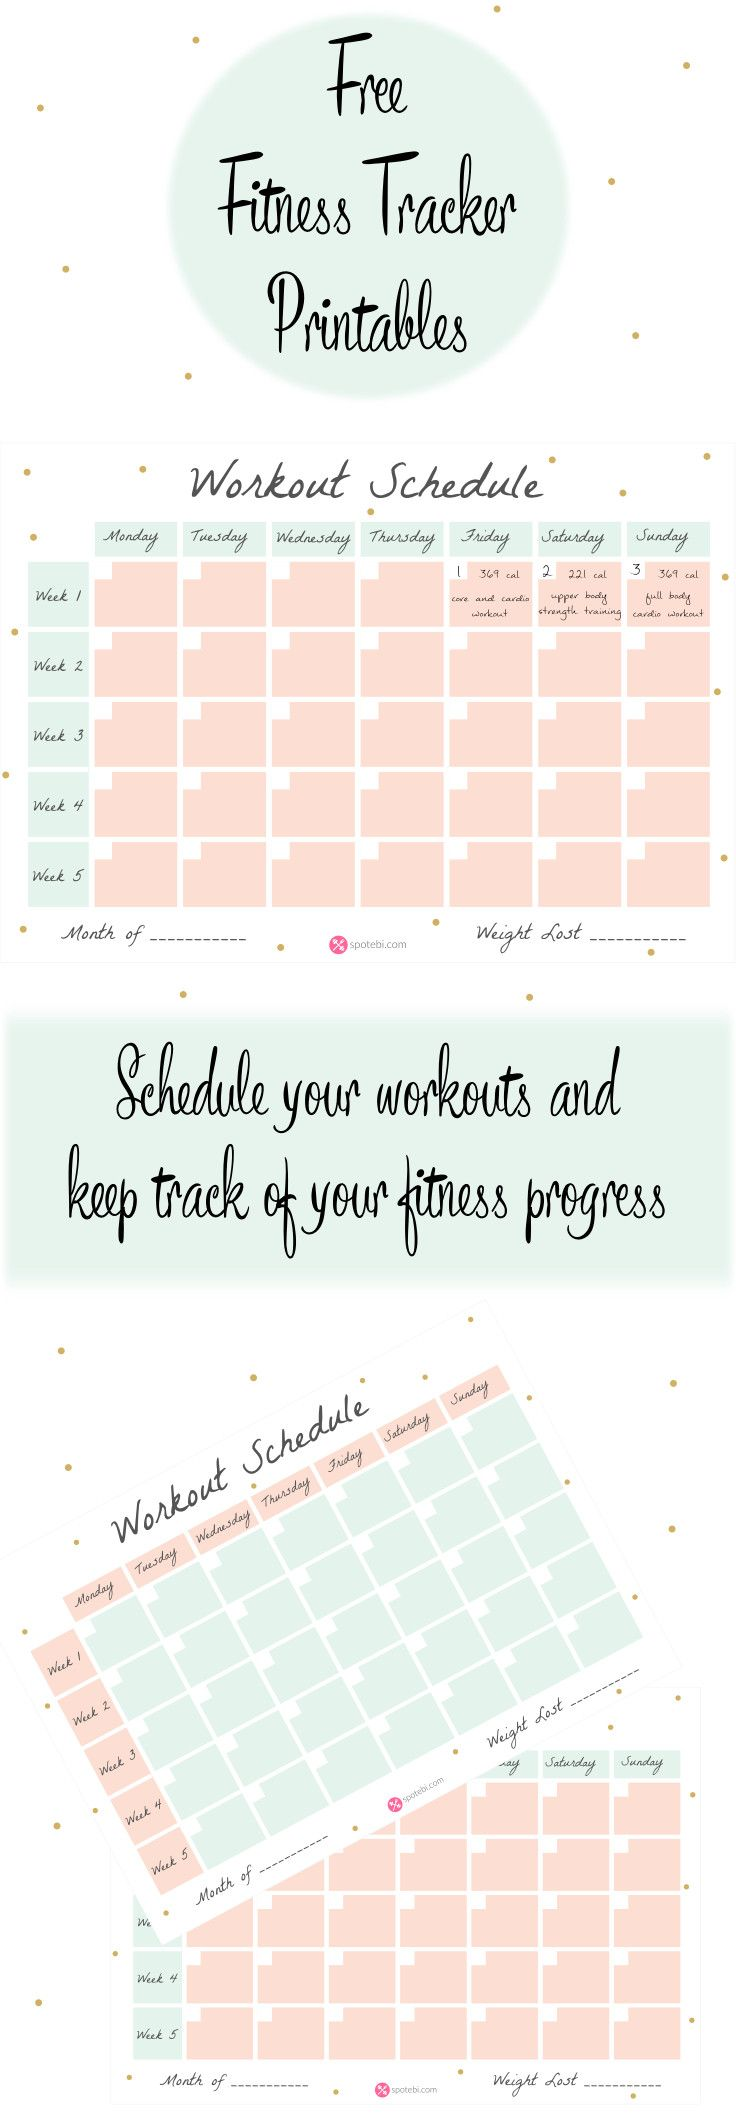 Pinterest: @ theapresgal ❄△ | This is wicked! Create a workout plan that suits your needs! Schedule your workouts and keep track of your fitness progress with this free workout schedule template! http://www.spotebi.com/fitness-tracker/workout-schedule-template/